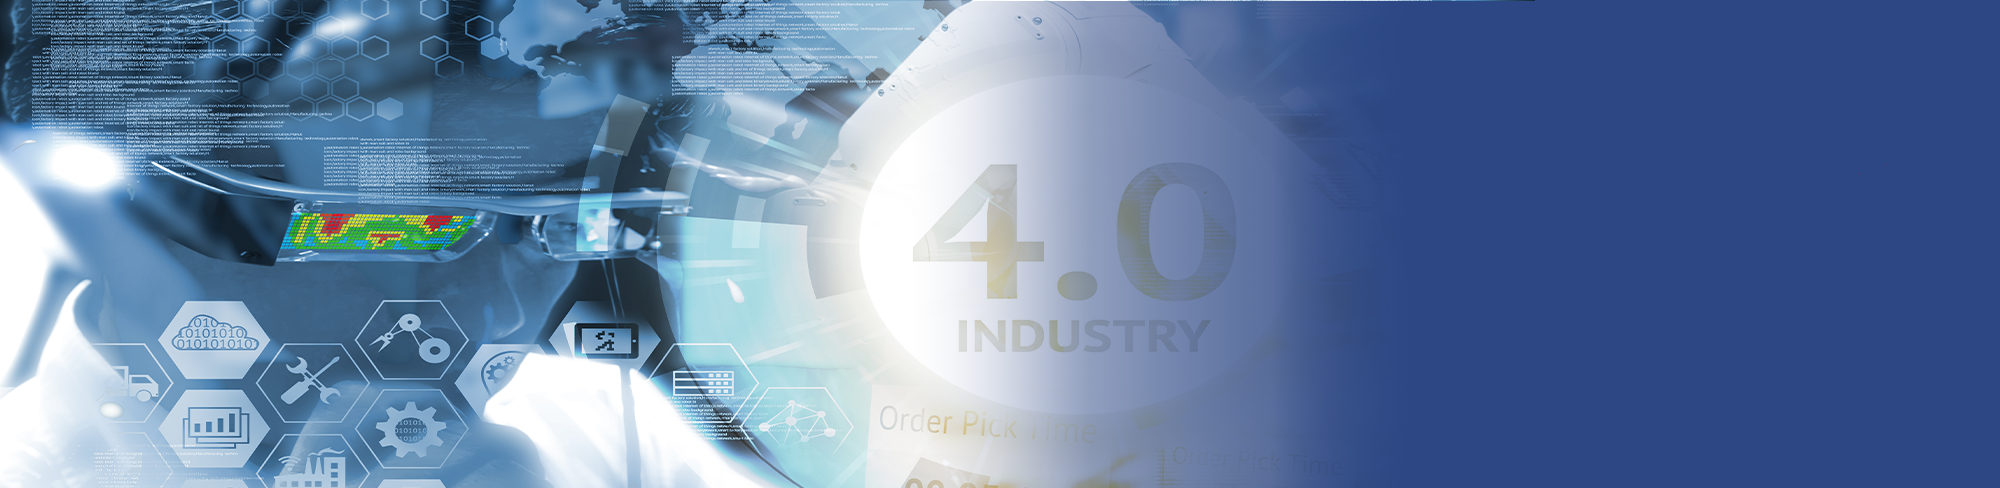 Industry 4.0 Blog Header Image